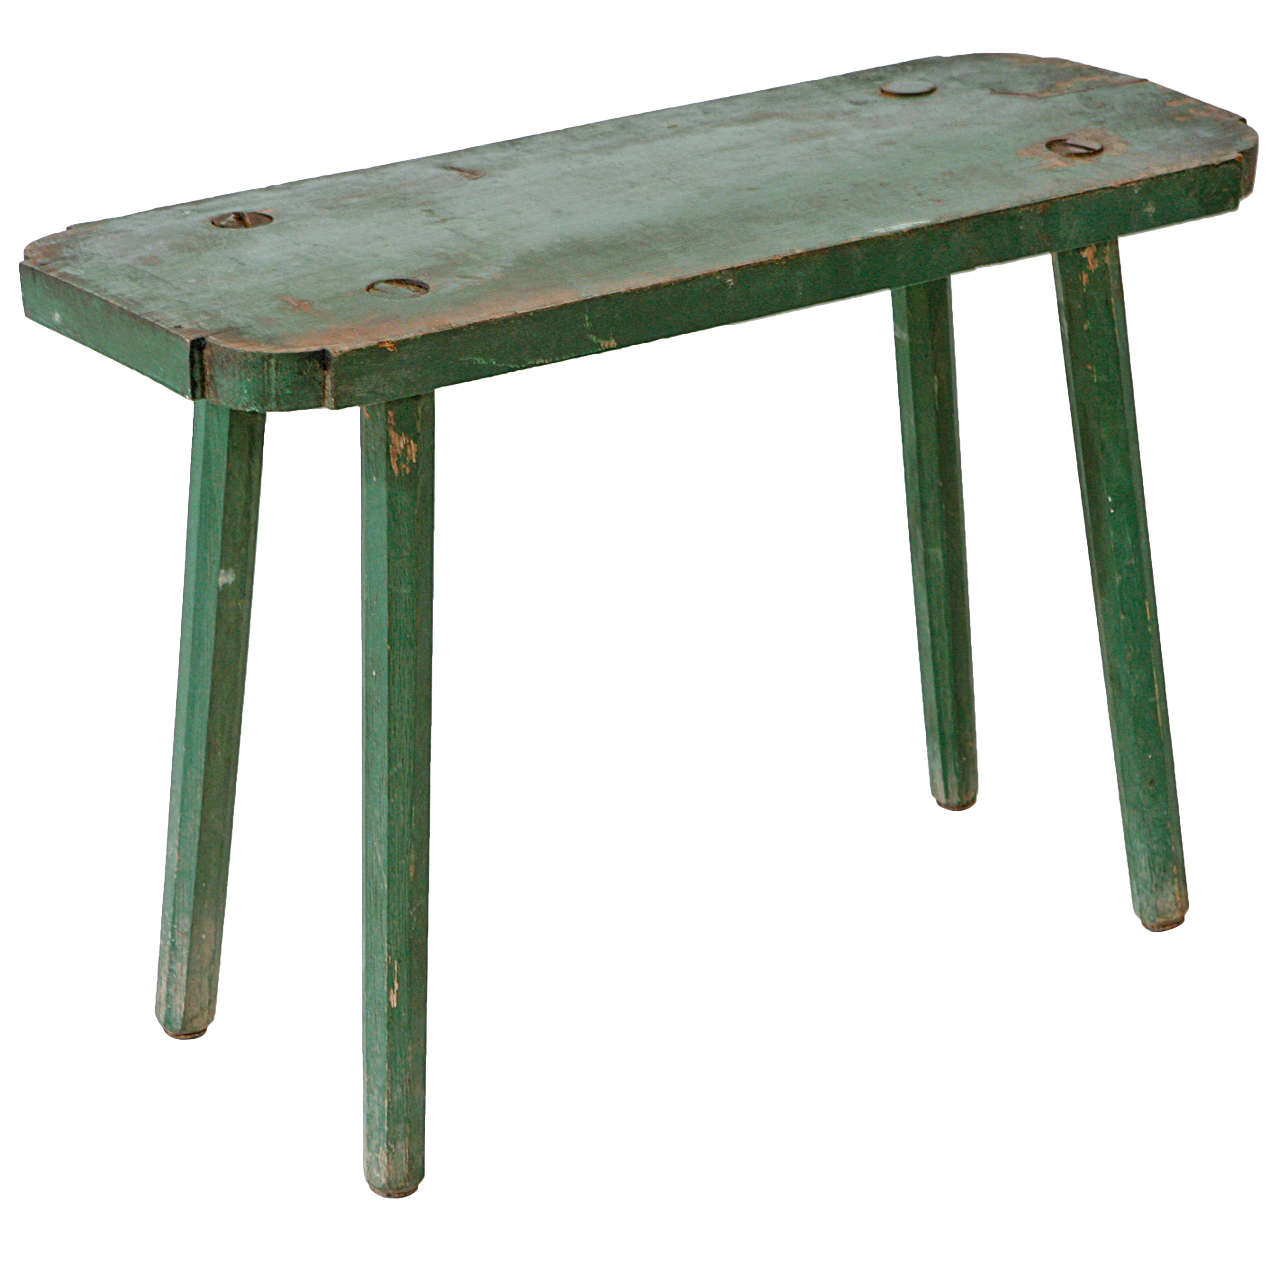 Vintage Small Rectangle Milking Bench At 1stdibs